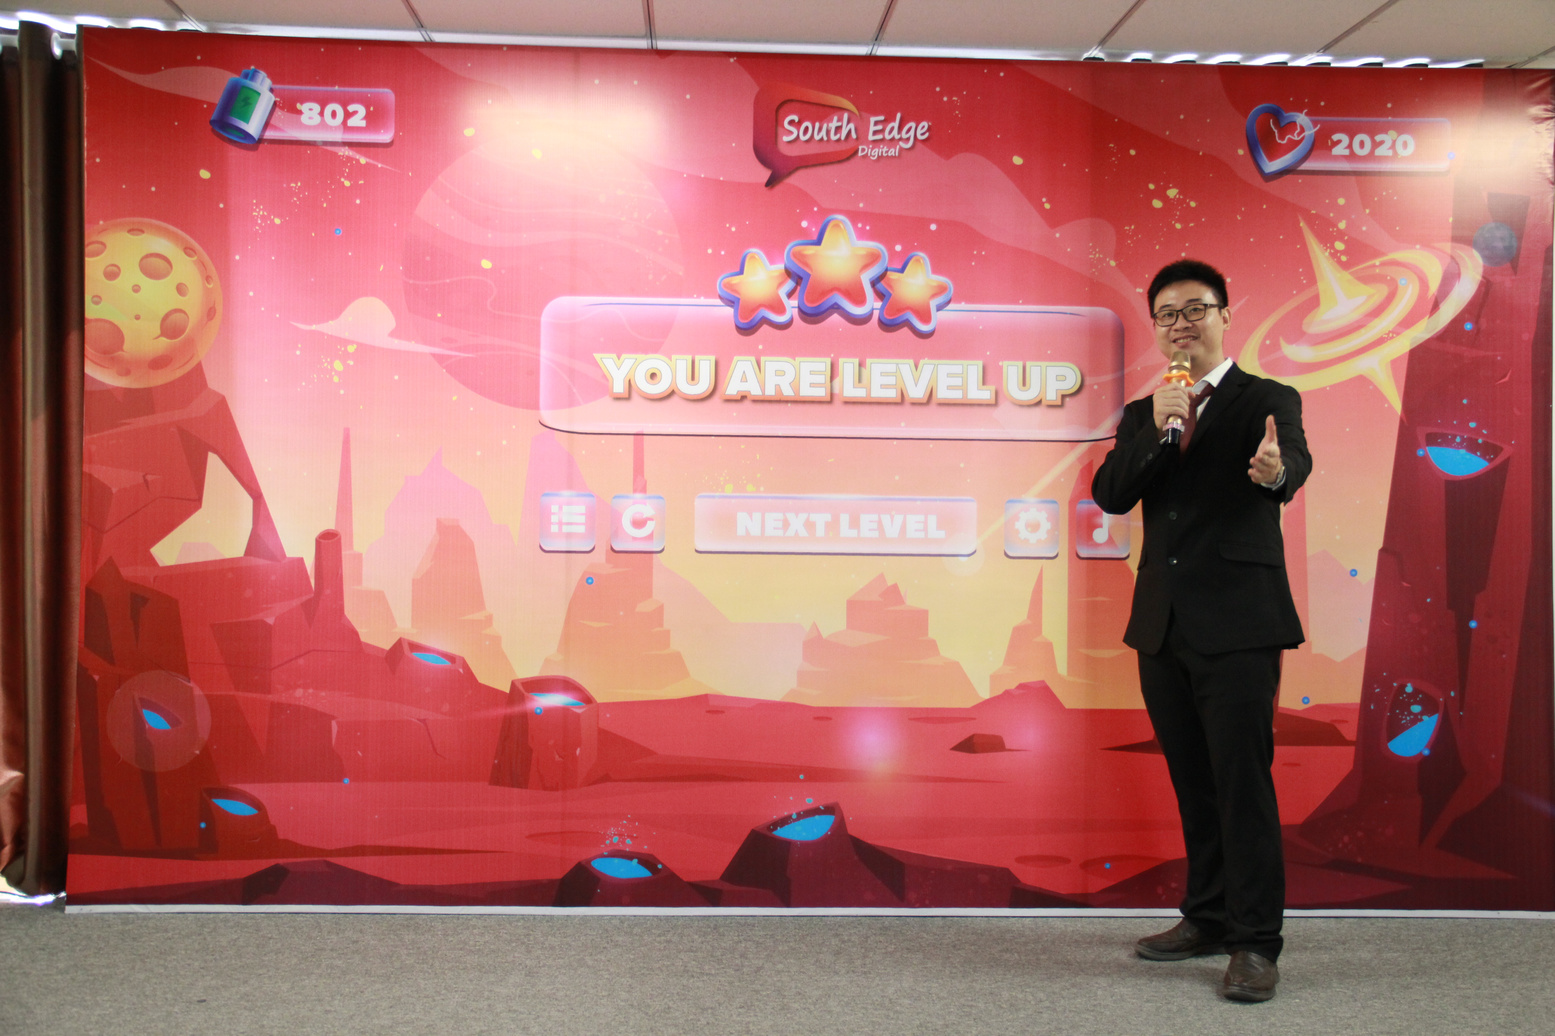 you are level up Southegde